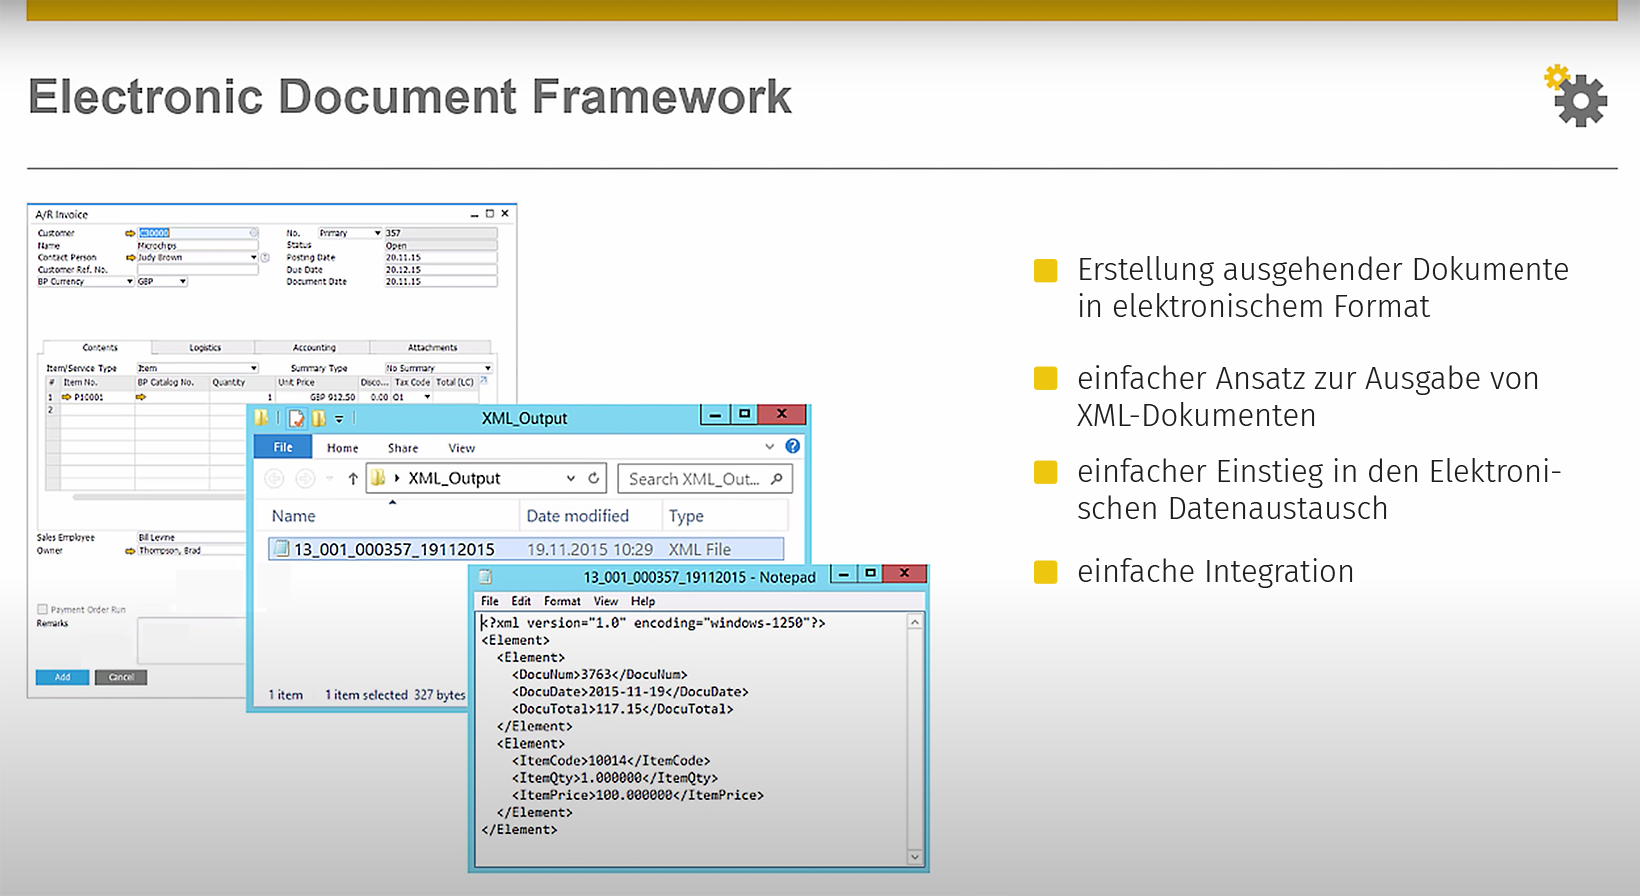 ElectronicDocumentFramework-SAP